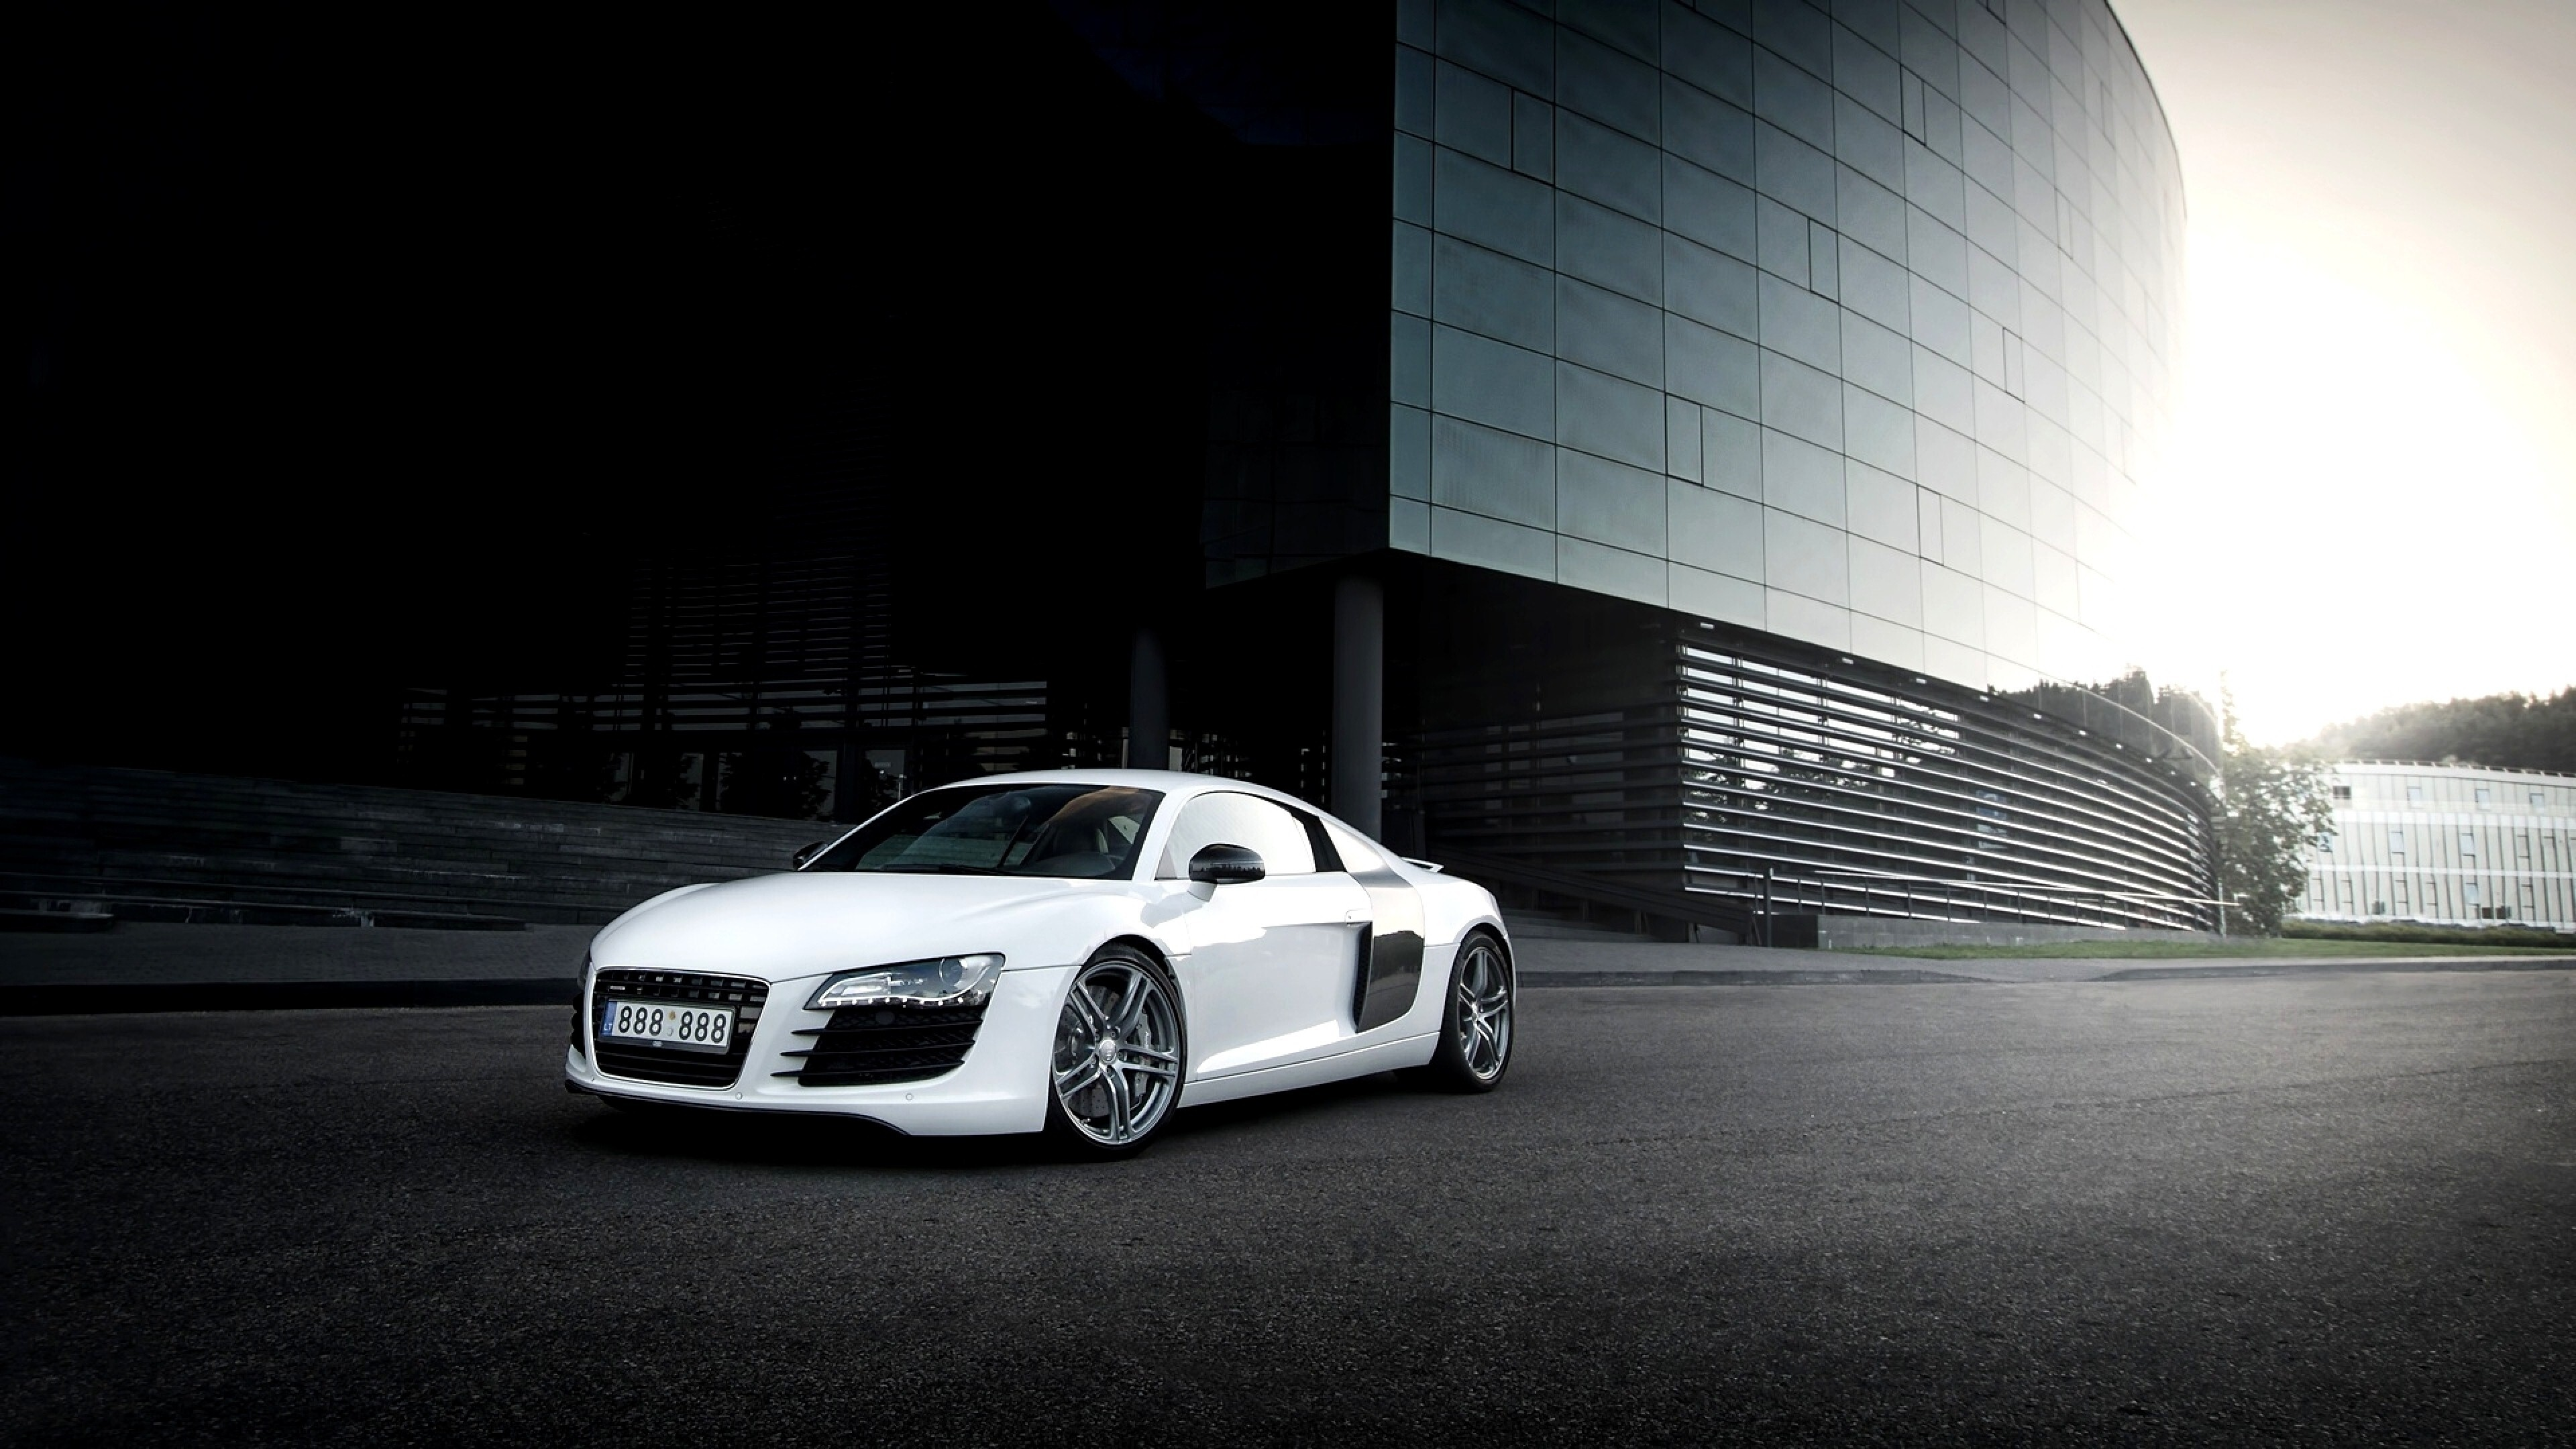 White Audi R8 Background Wallpaper Hd Wallpapers